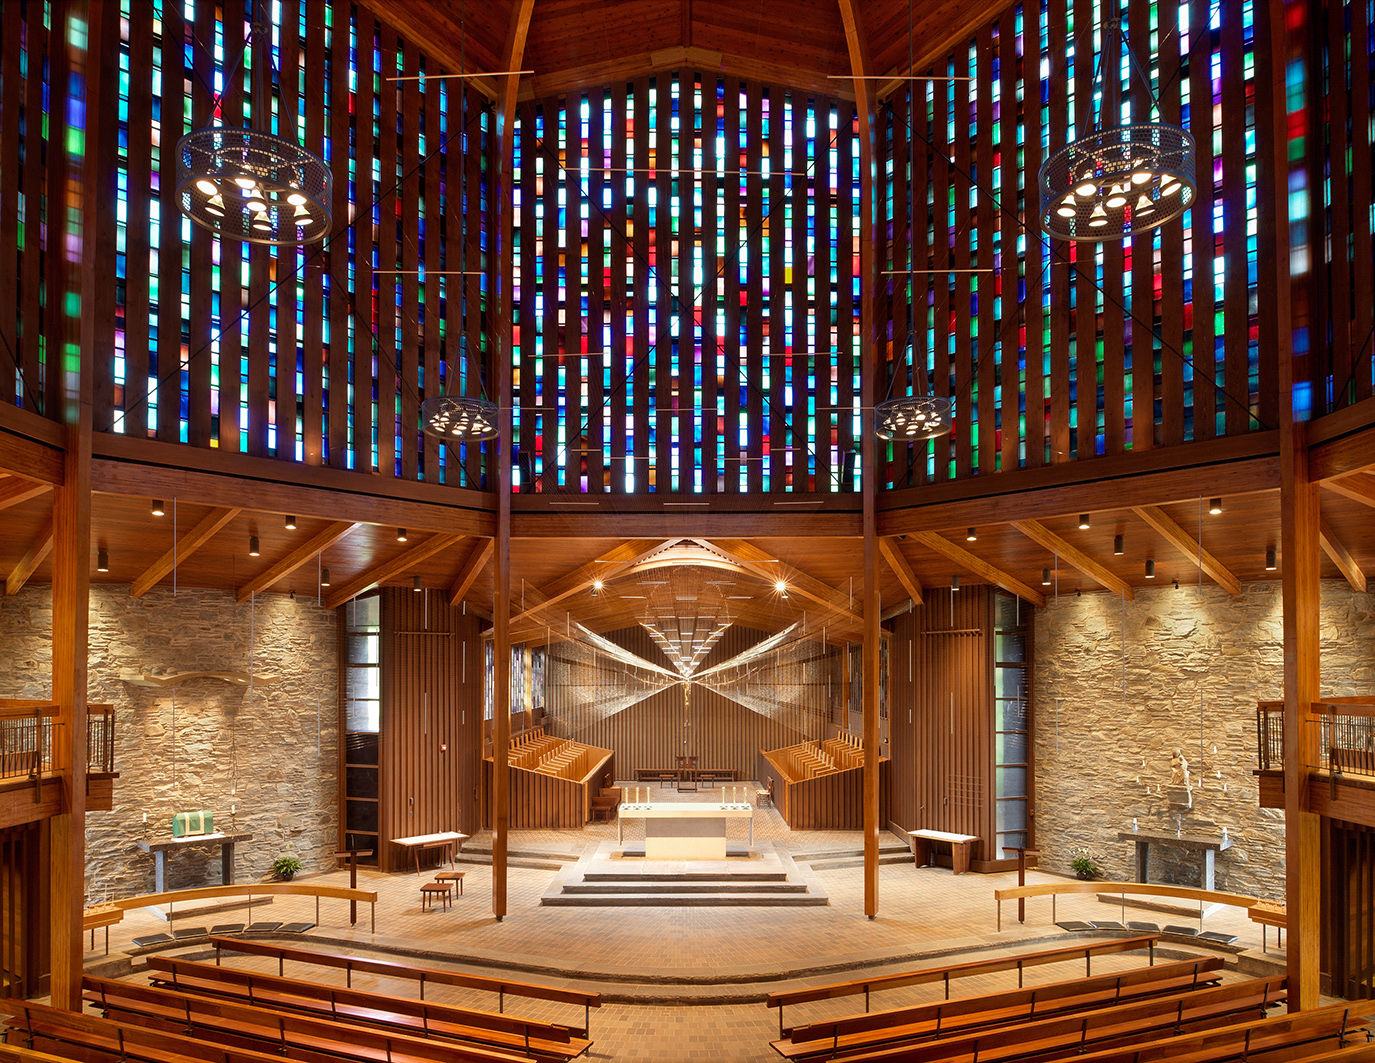 AIA CT Honors Church of St. Gregory the Great with 2013 Design Award